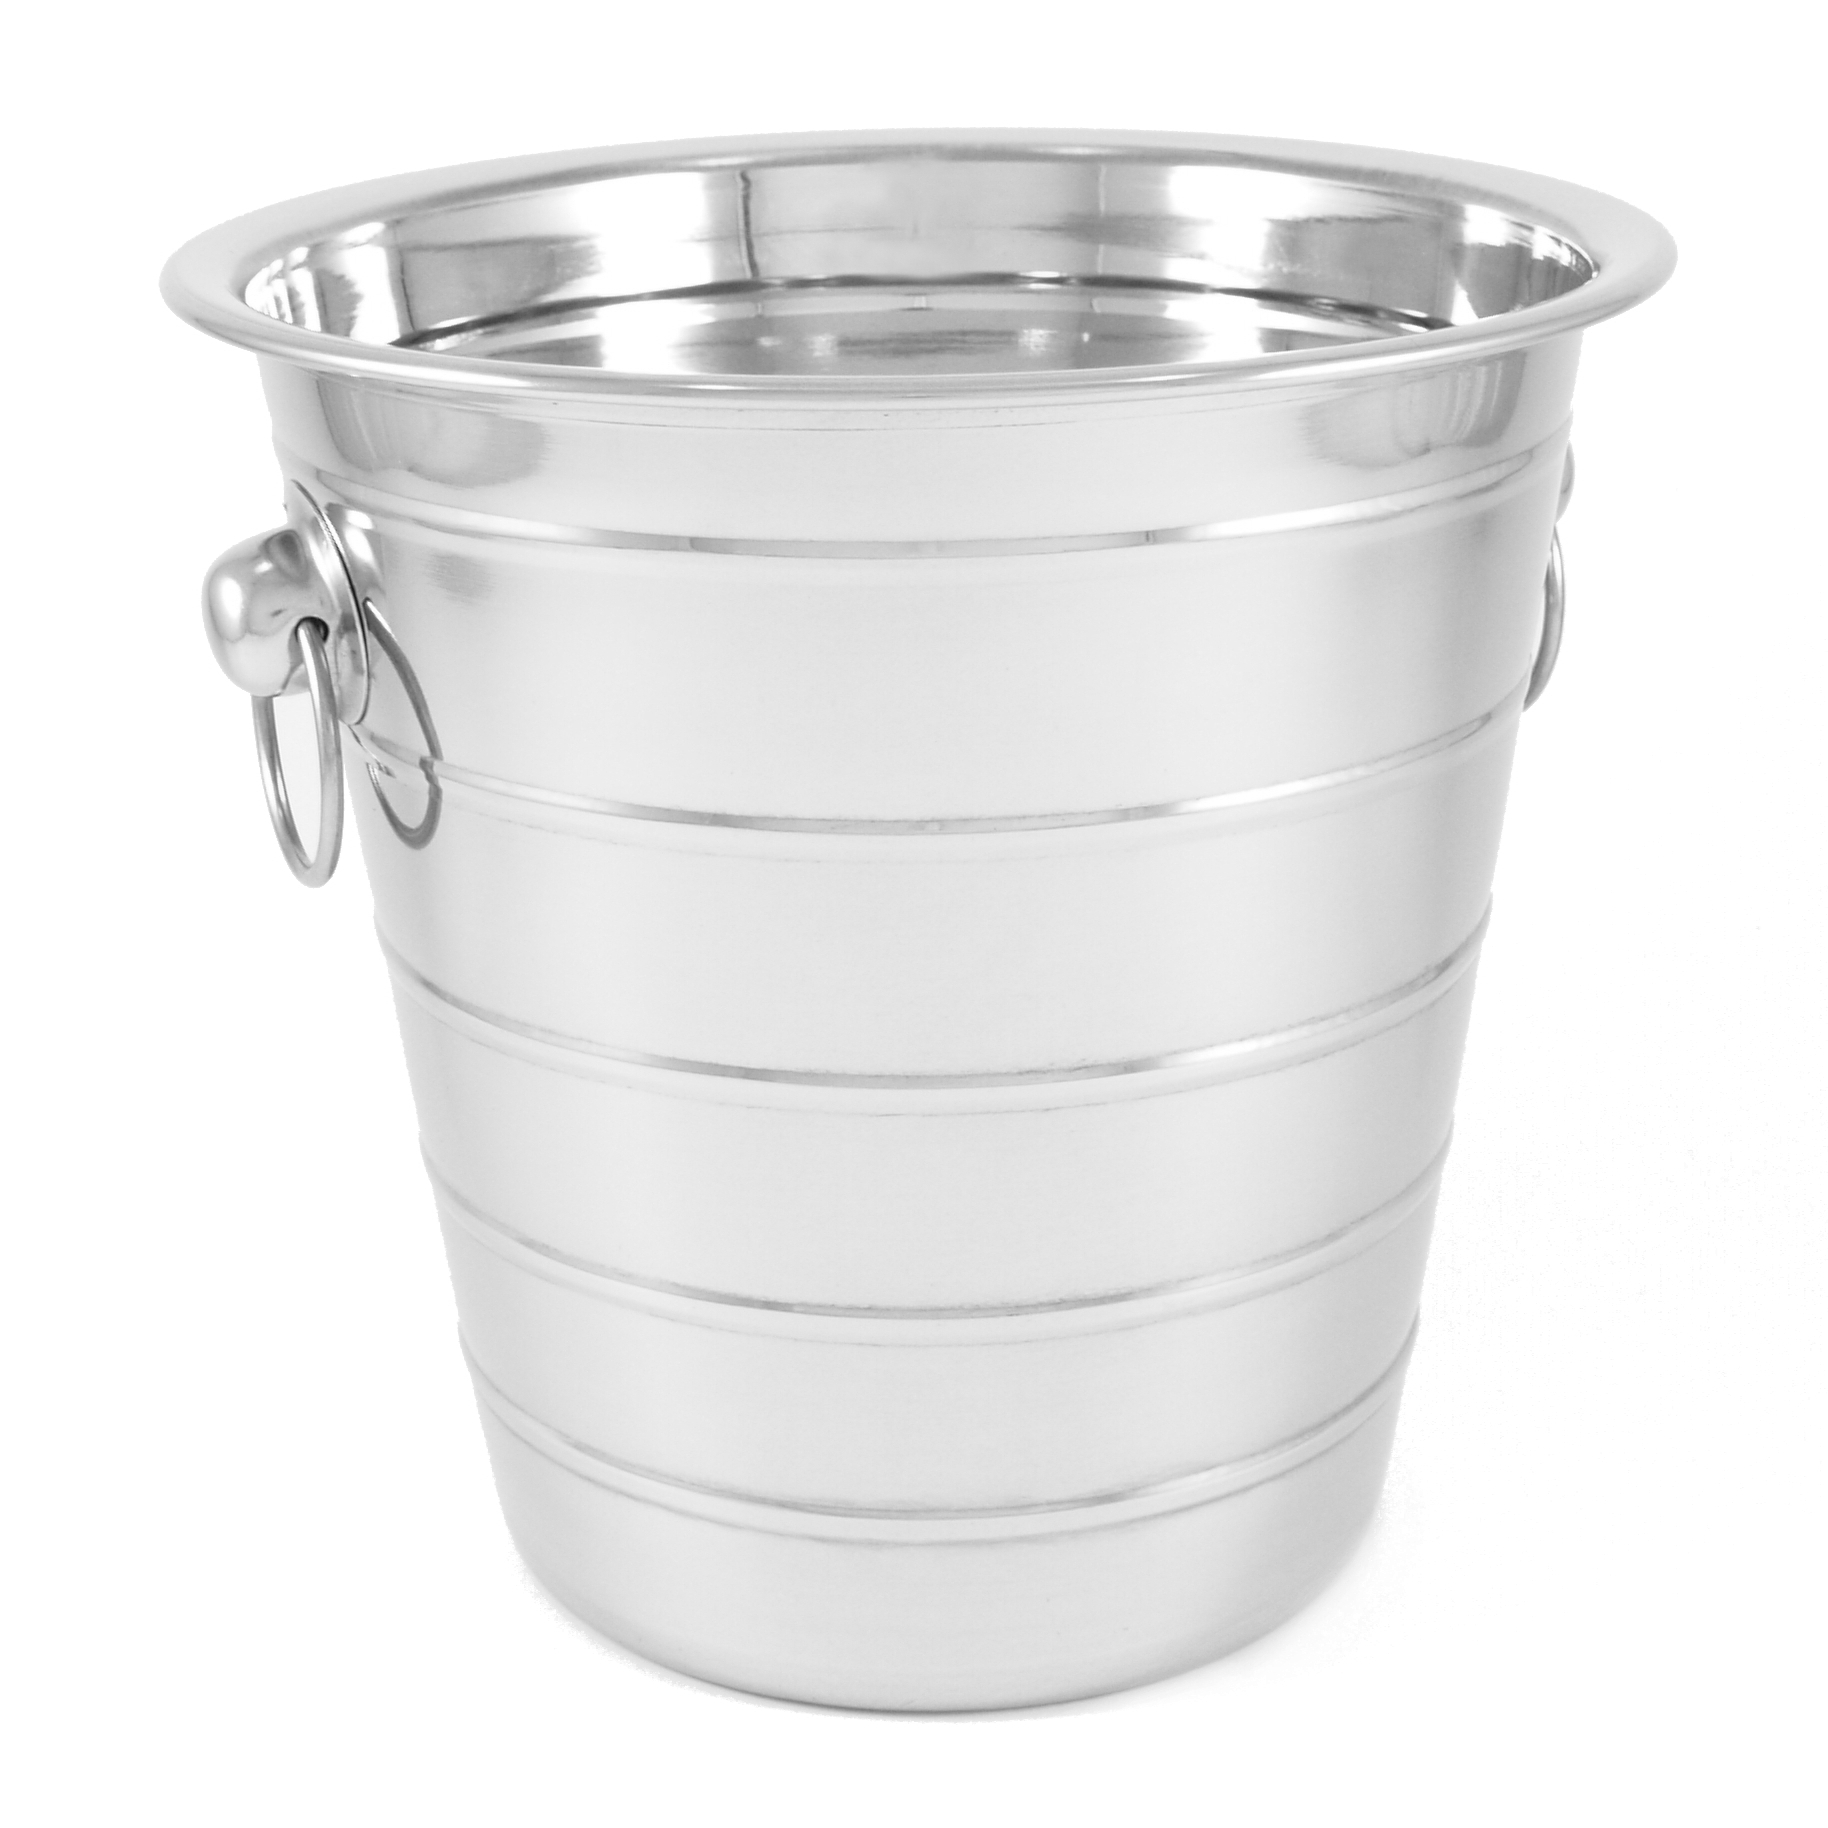 Stainless Steel Ribbed Ice Bucket 5 Quart